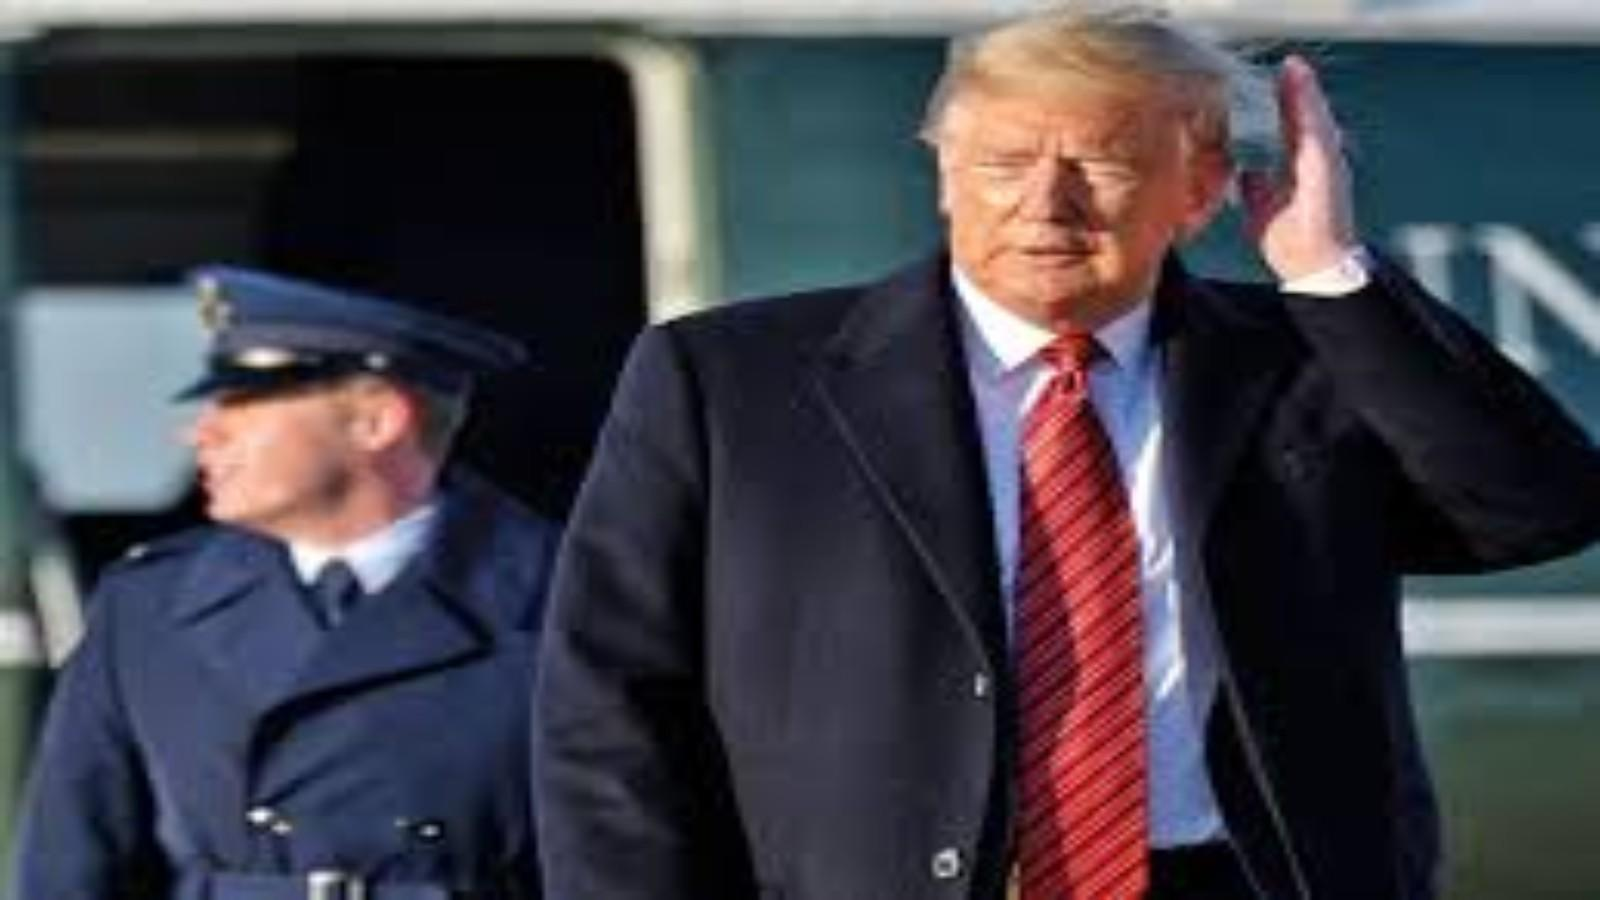 security-arrangements-beefed-up-ahead-of-us-president-trumps-visit-to-india